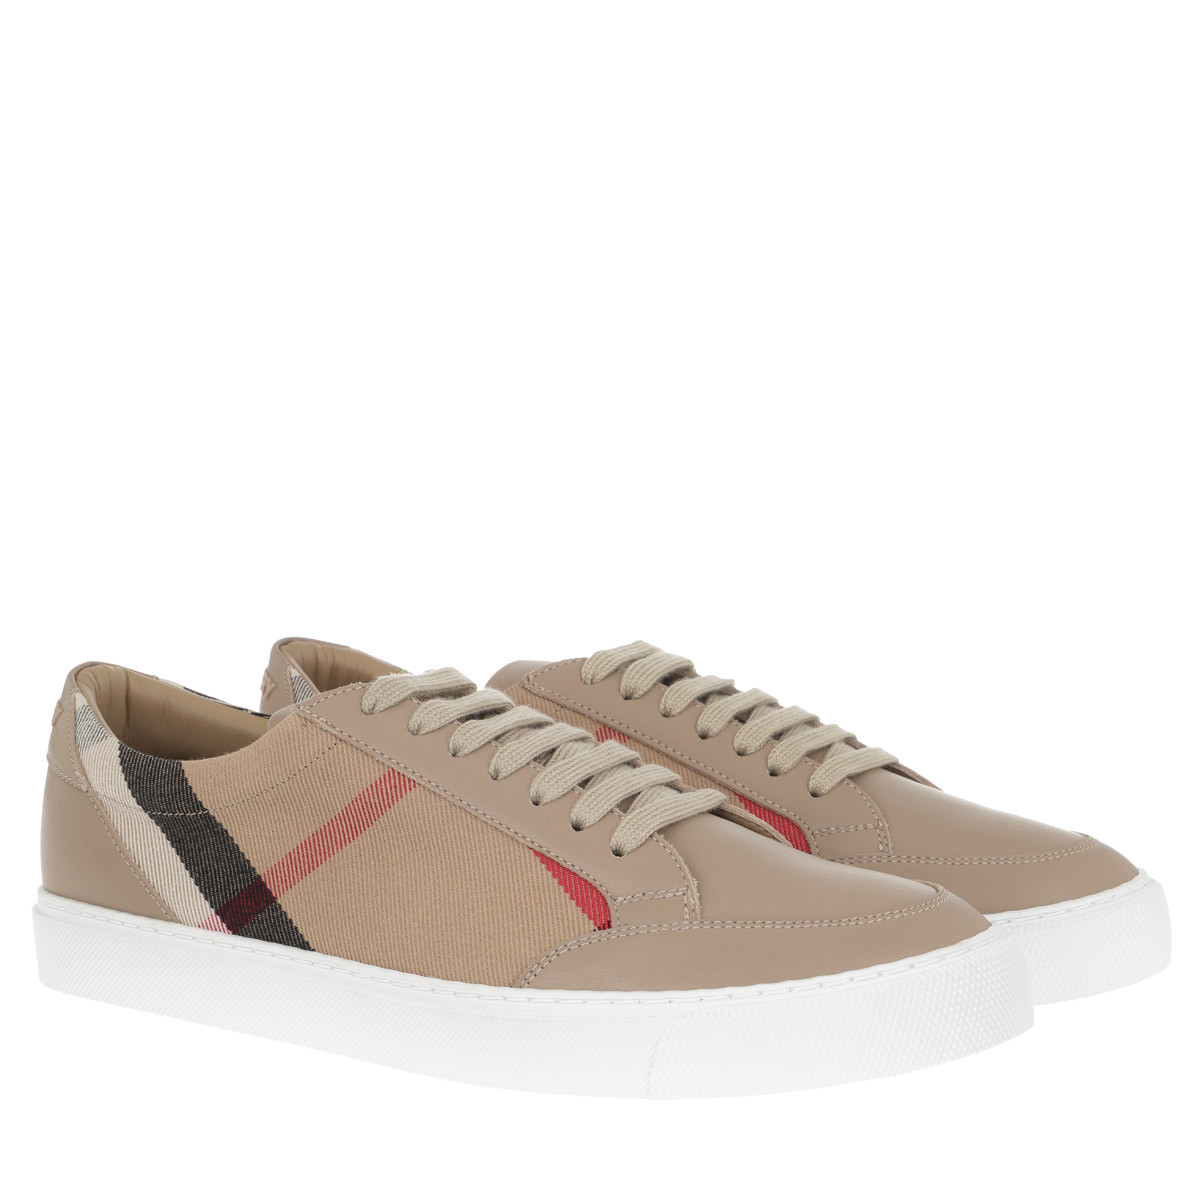 Burberry Sneakers - House Check Sneaker Tan - in beige - für Damen